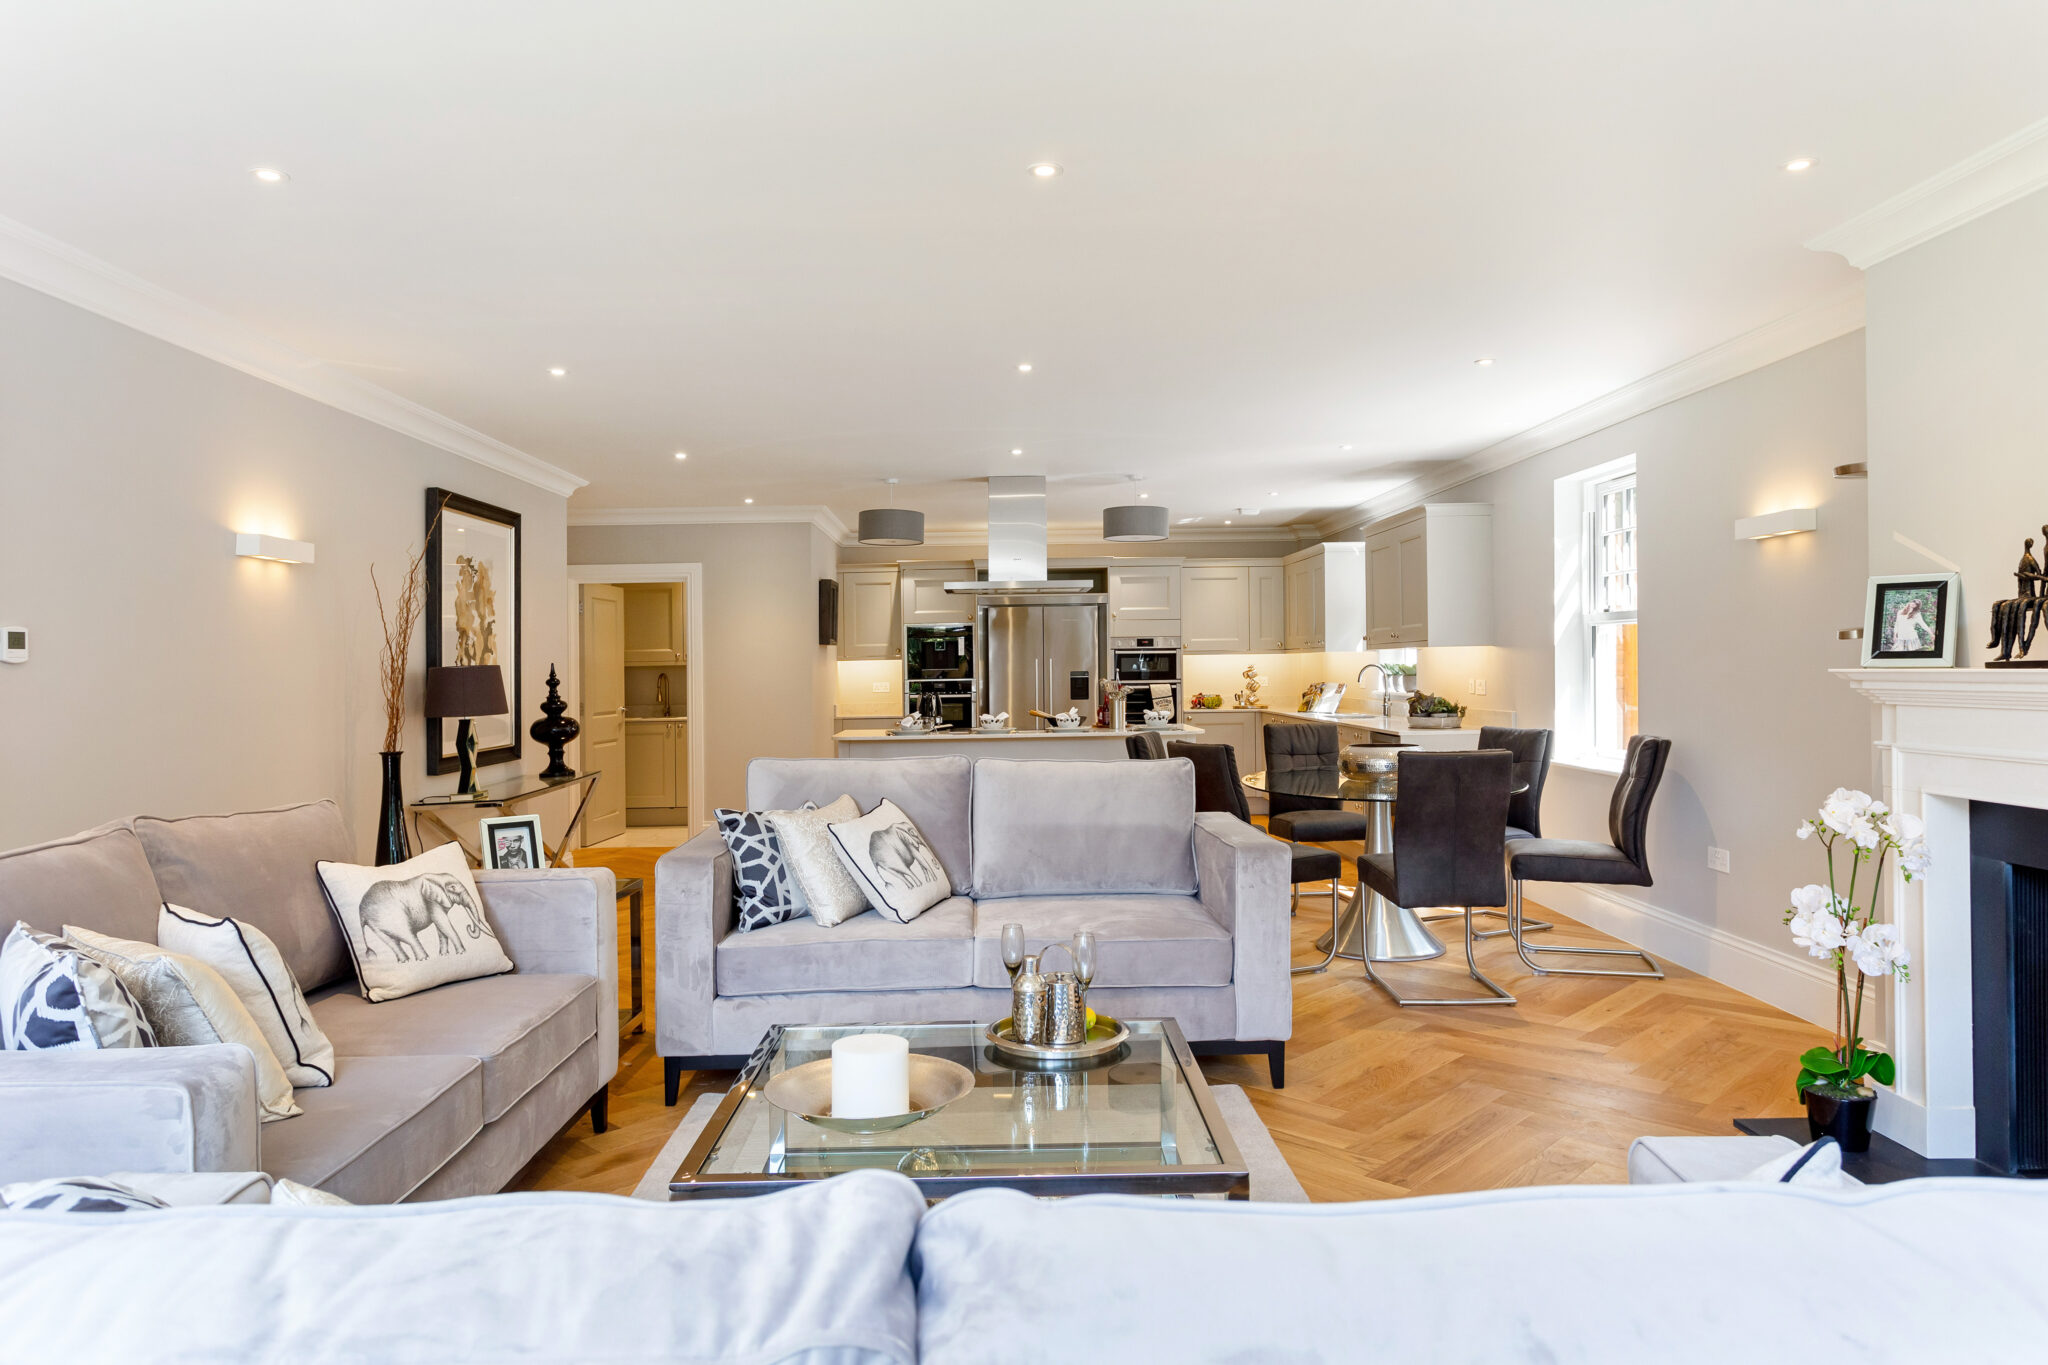 Summersdale Place – Chichester